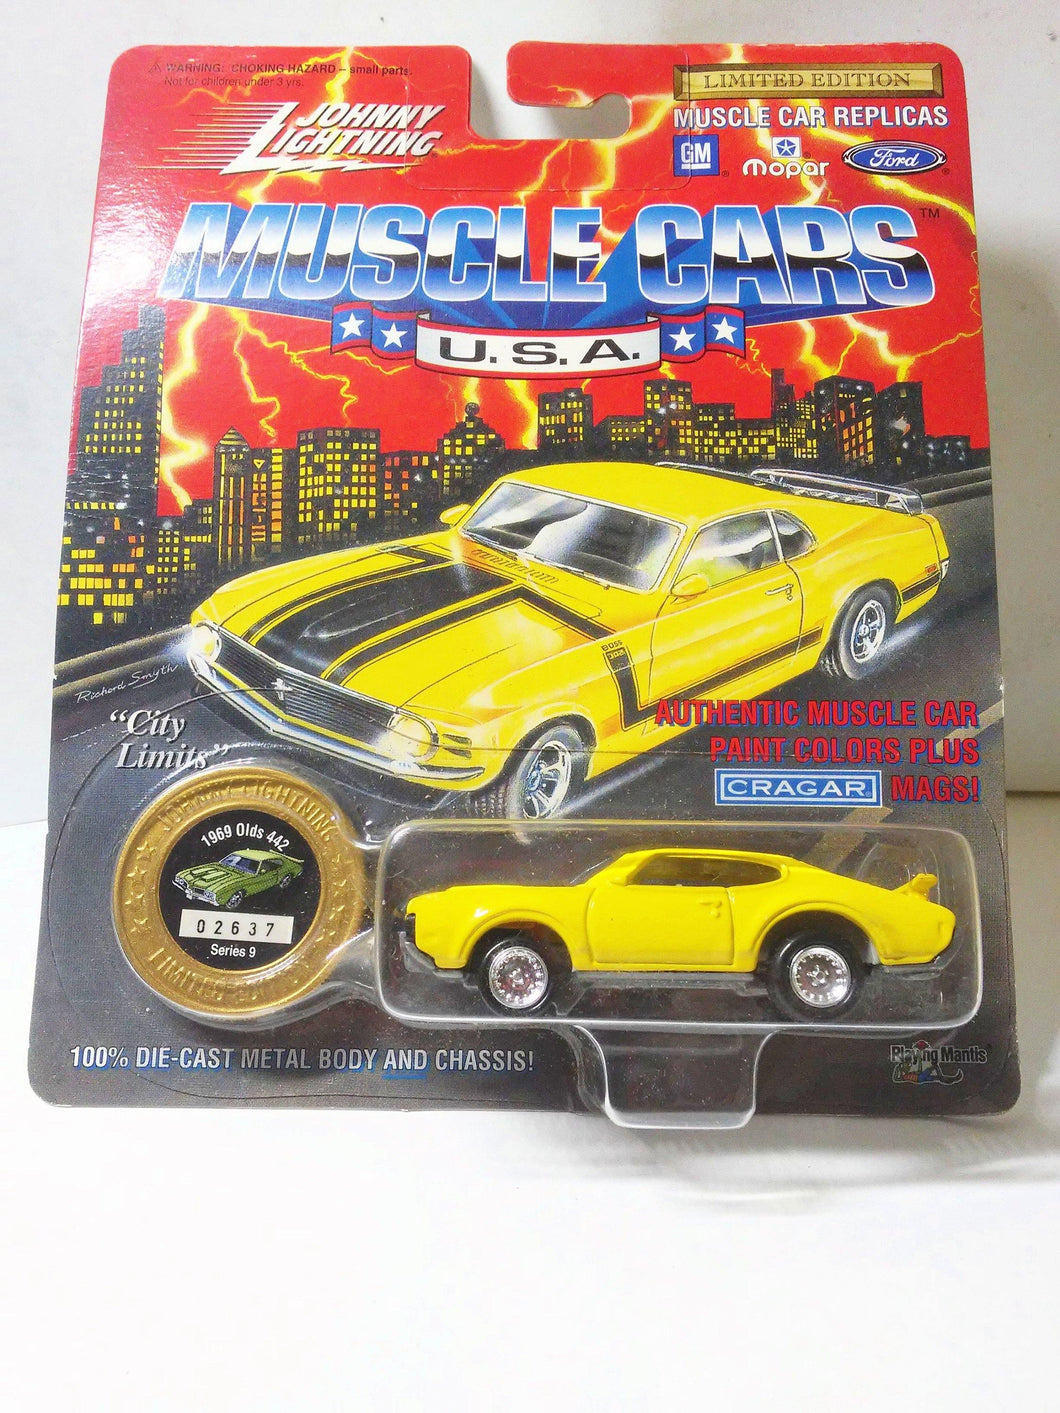 Johnny Lightning Muscle Cars USA 1969 Olds 442 Series 9 Limited Edition Made in 1995